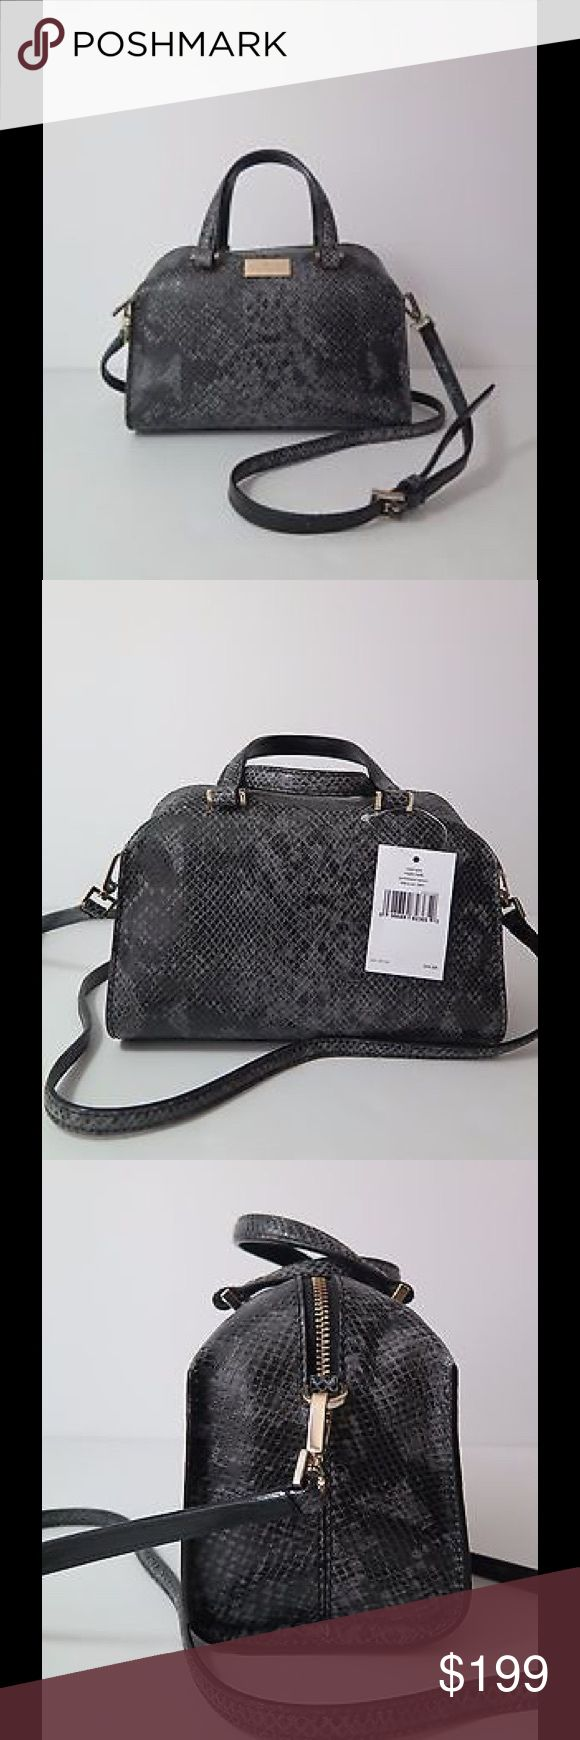 """🆕 Kate Spade Mini Mara Parliament Square Exotic Exotic snake print genuine Leather  Top zip closure  Approximately measures:  Height 6.5"""" x Depth 4.5"""" x Width 9"""" ; Handles 3"""" drop  Adjustable, removable cross body shoulder strap 22"""" max  14 karat light gold plated hardware  Interior zipper pocket and two open pockets  Back slide pocket  A structured silhouette with snake-patterned accents offers an appealing blend of classic and edgy style  Brand new with tag; retail price $365  Smoke free…"""